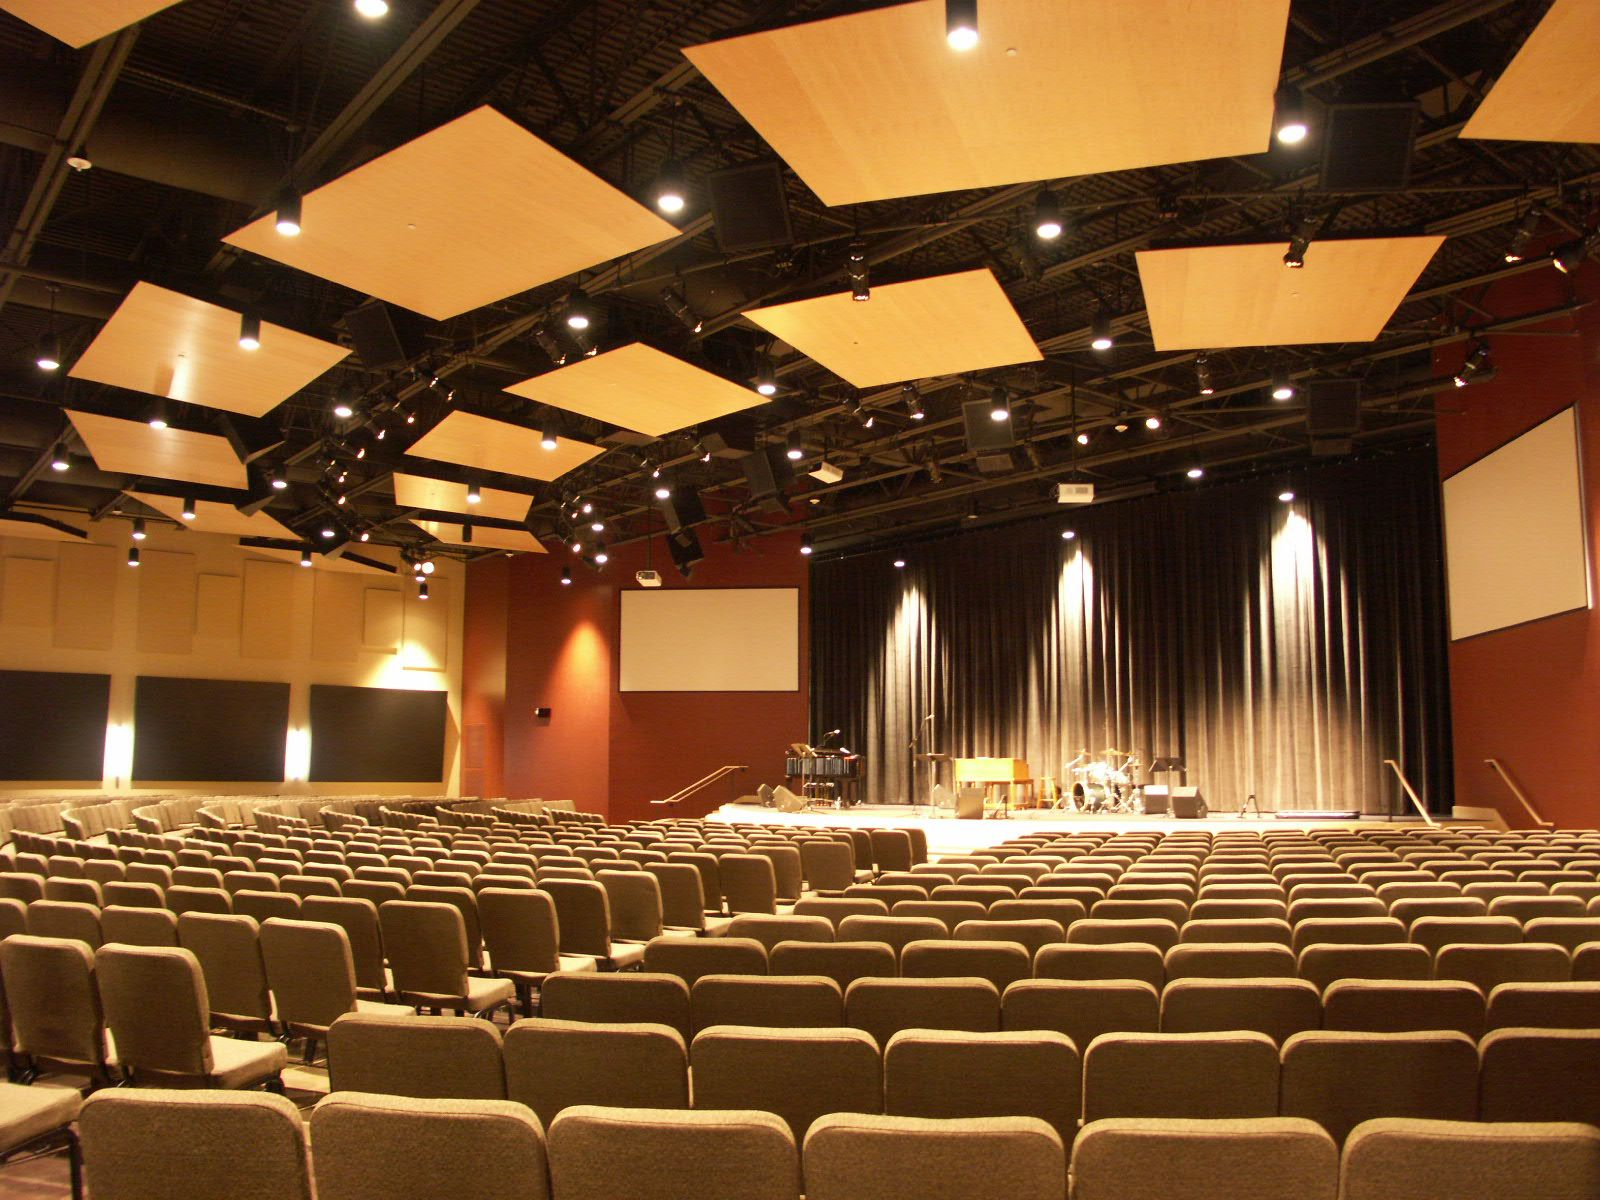 More Modern Churches Are Beginning To Resemble Theatrical Spaces Moving Away From More Traditional Church V Church Design Church Interior Design Modern Church